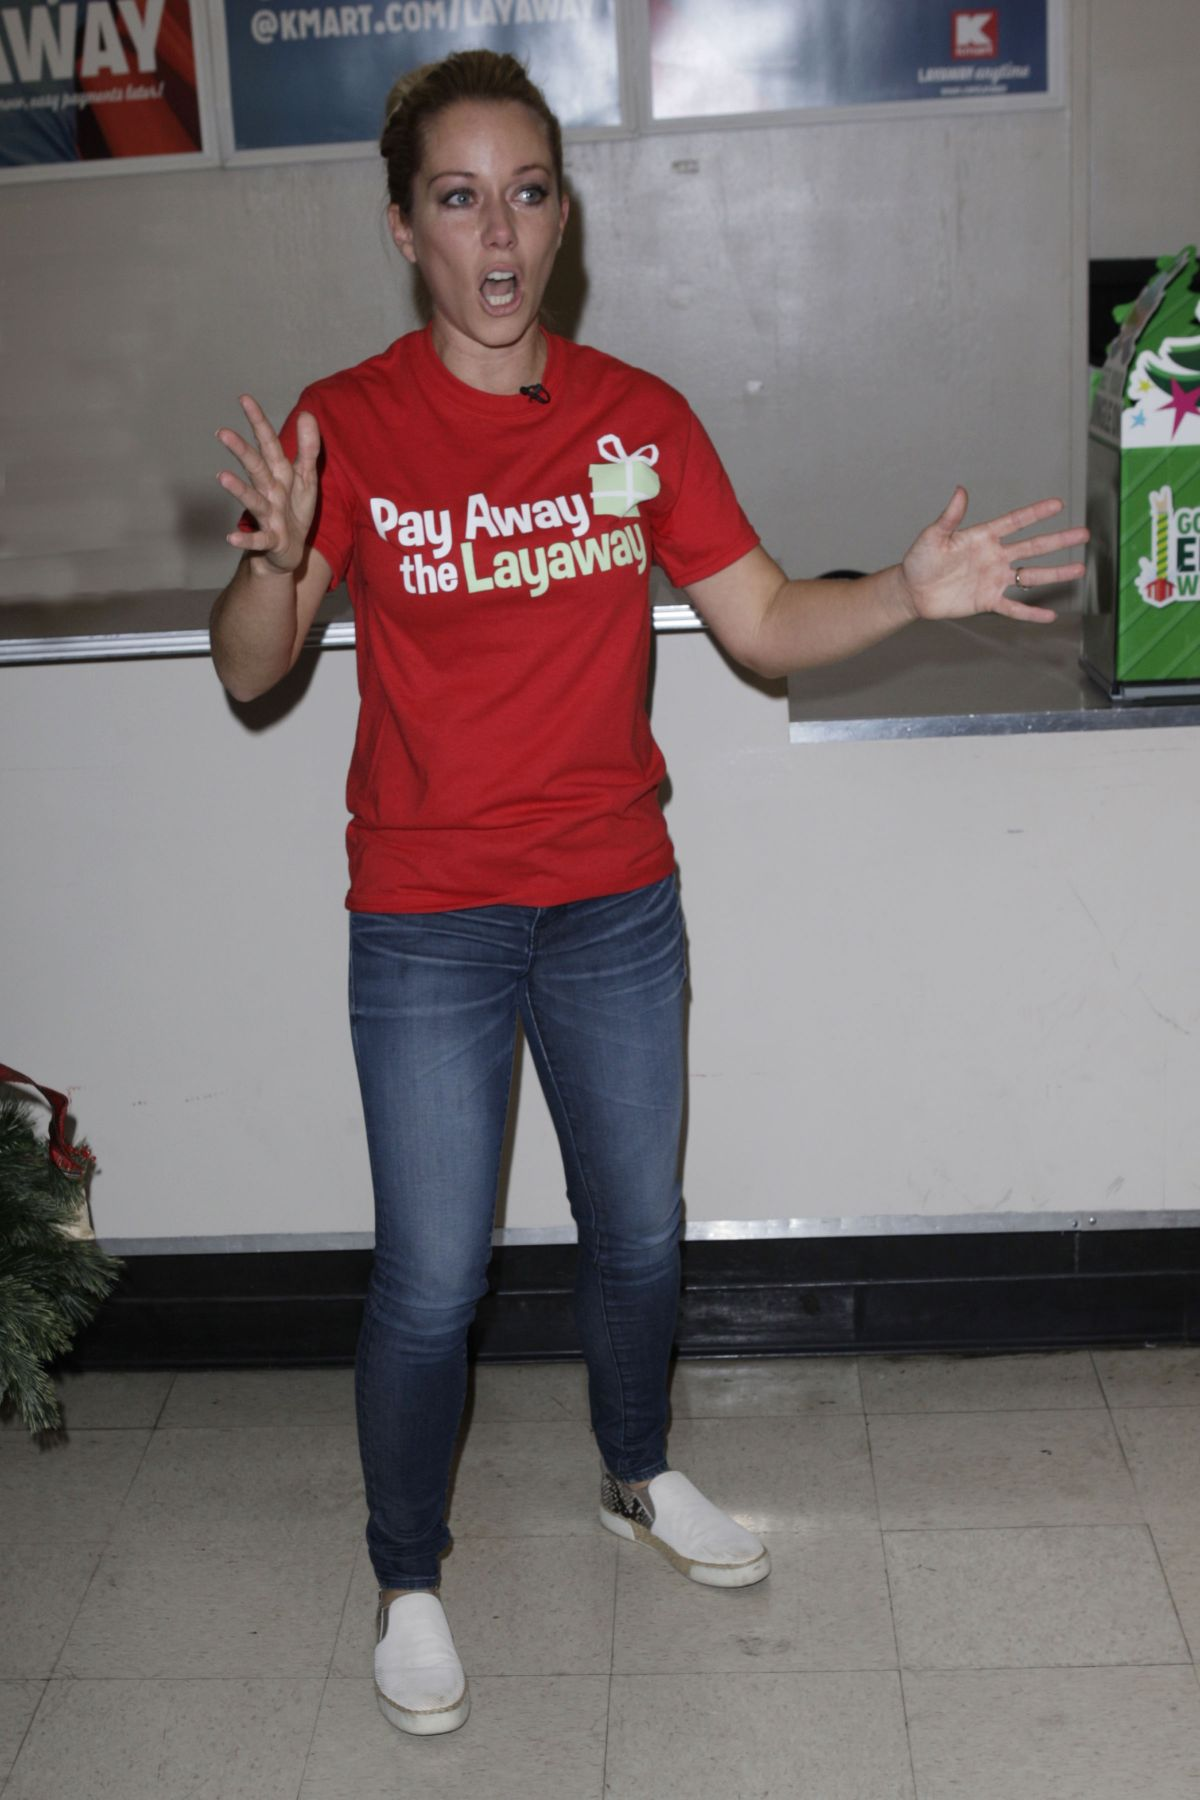 KENDRA WILKINSON Hosts Pay Away the Layaway Charity Event in Burbank 12/20/2016